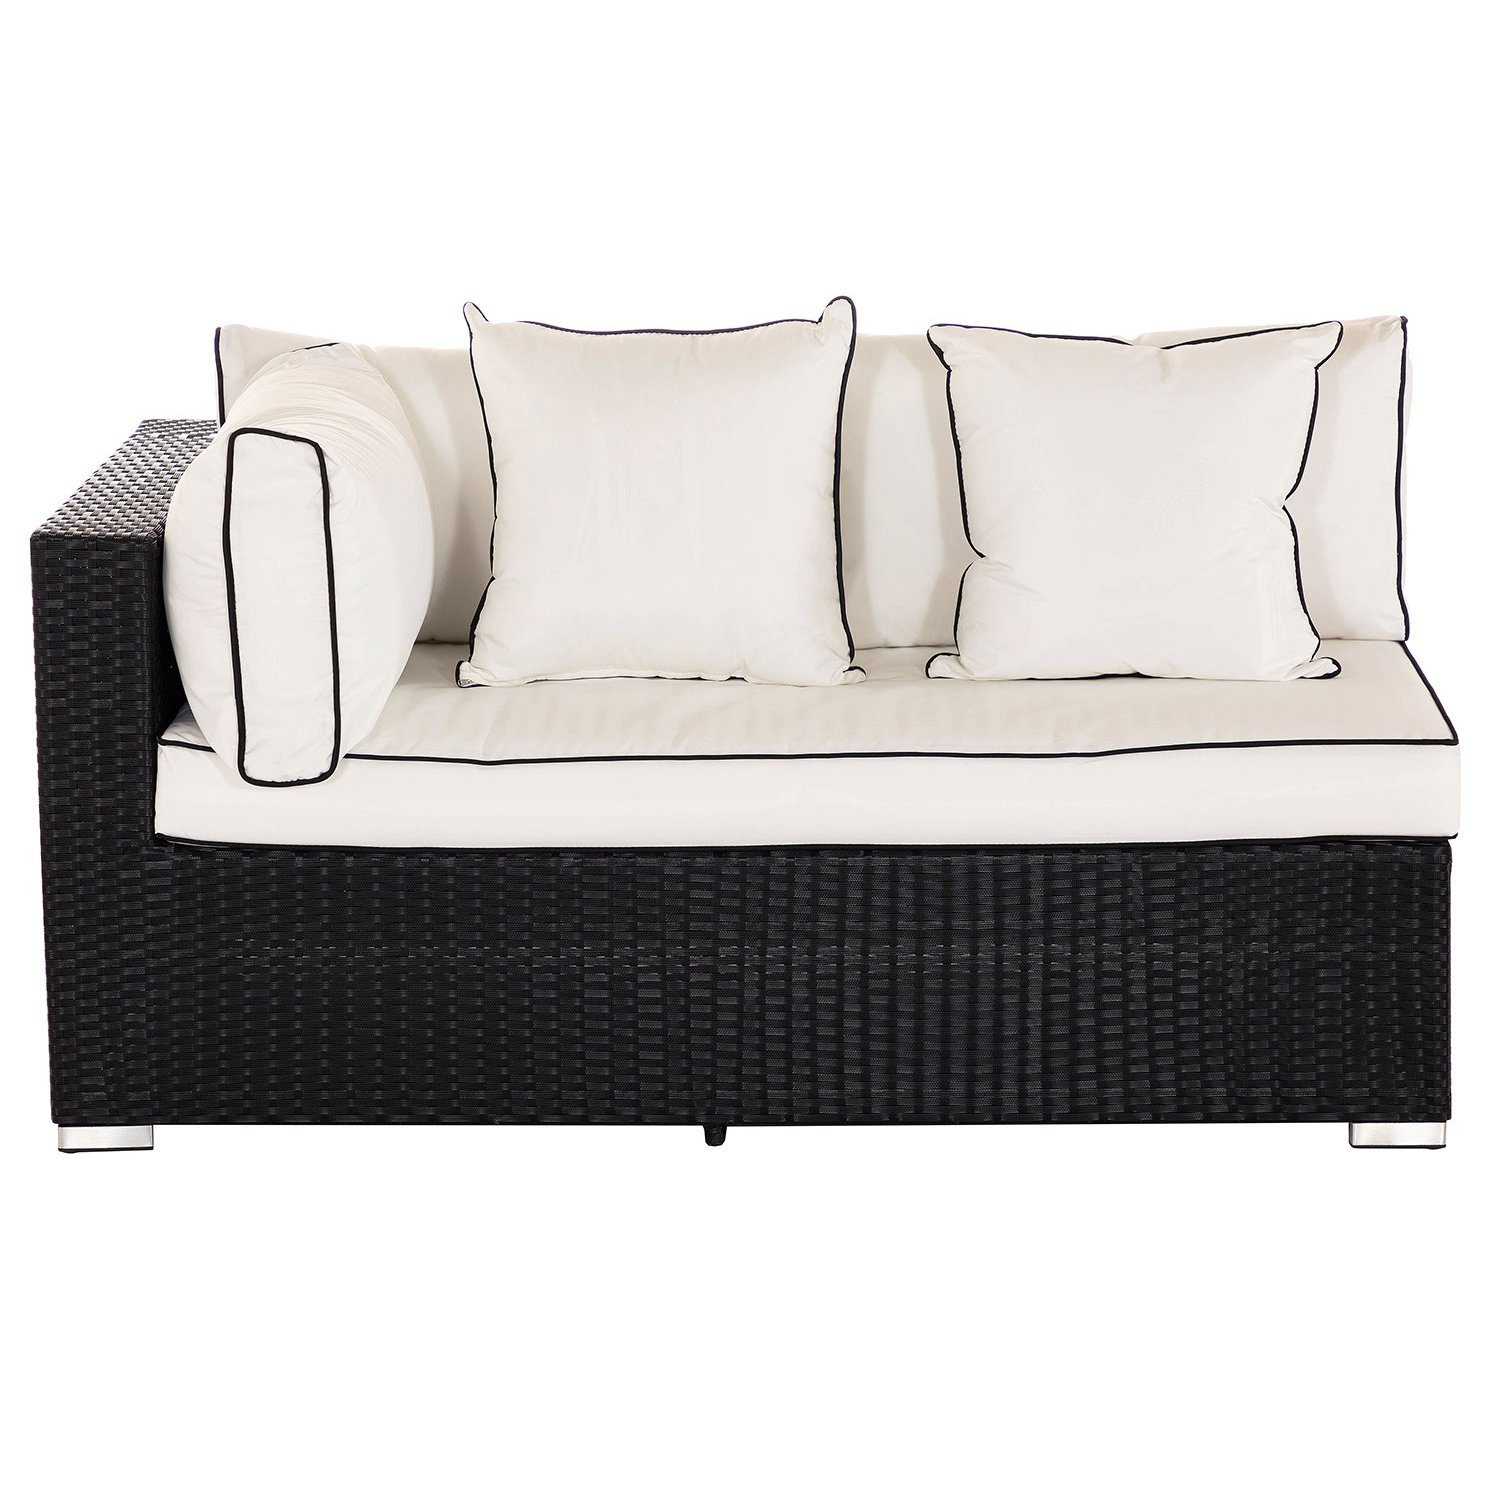 image-Monaco Rectangular Right As You Sit Rattan Garden Sofa in Black & Vanilla